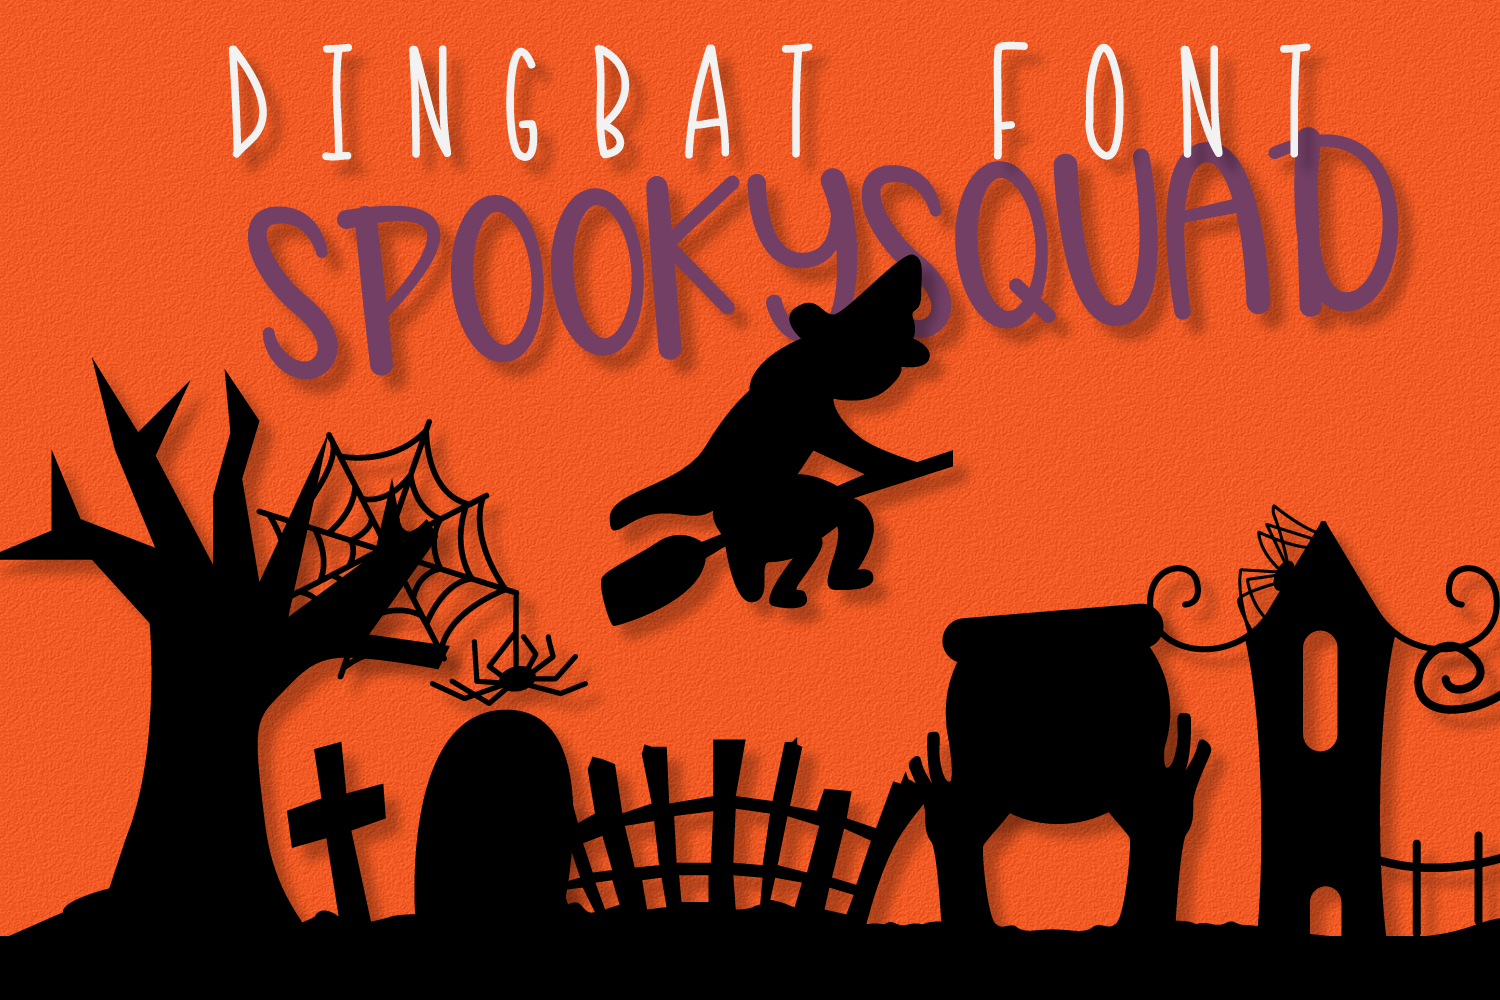 Spooky Squad - A Halloween Dingbat Font example image 2